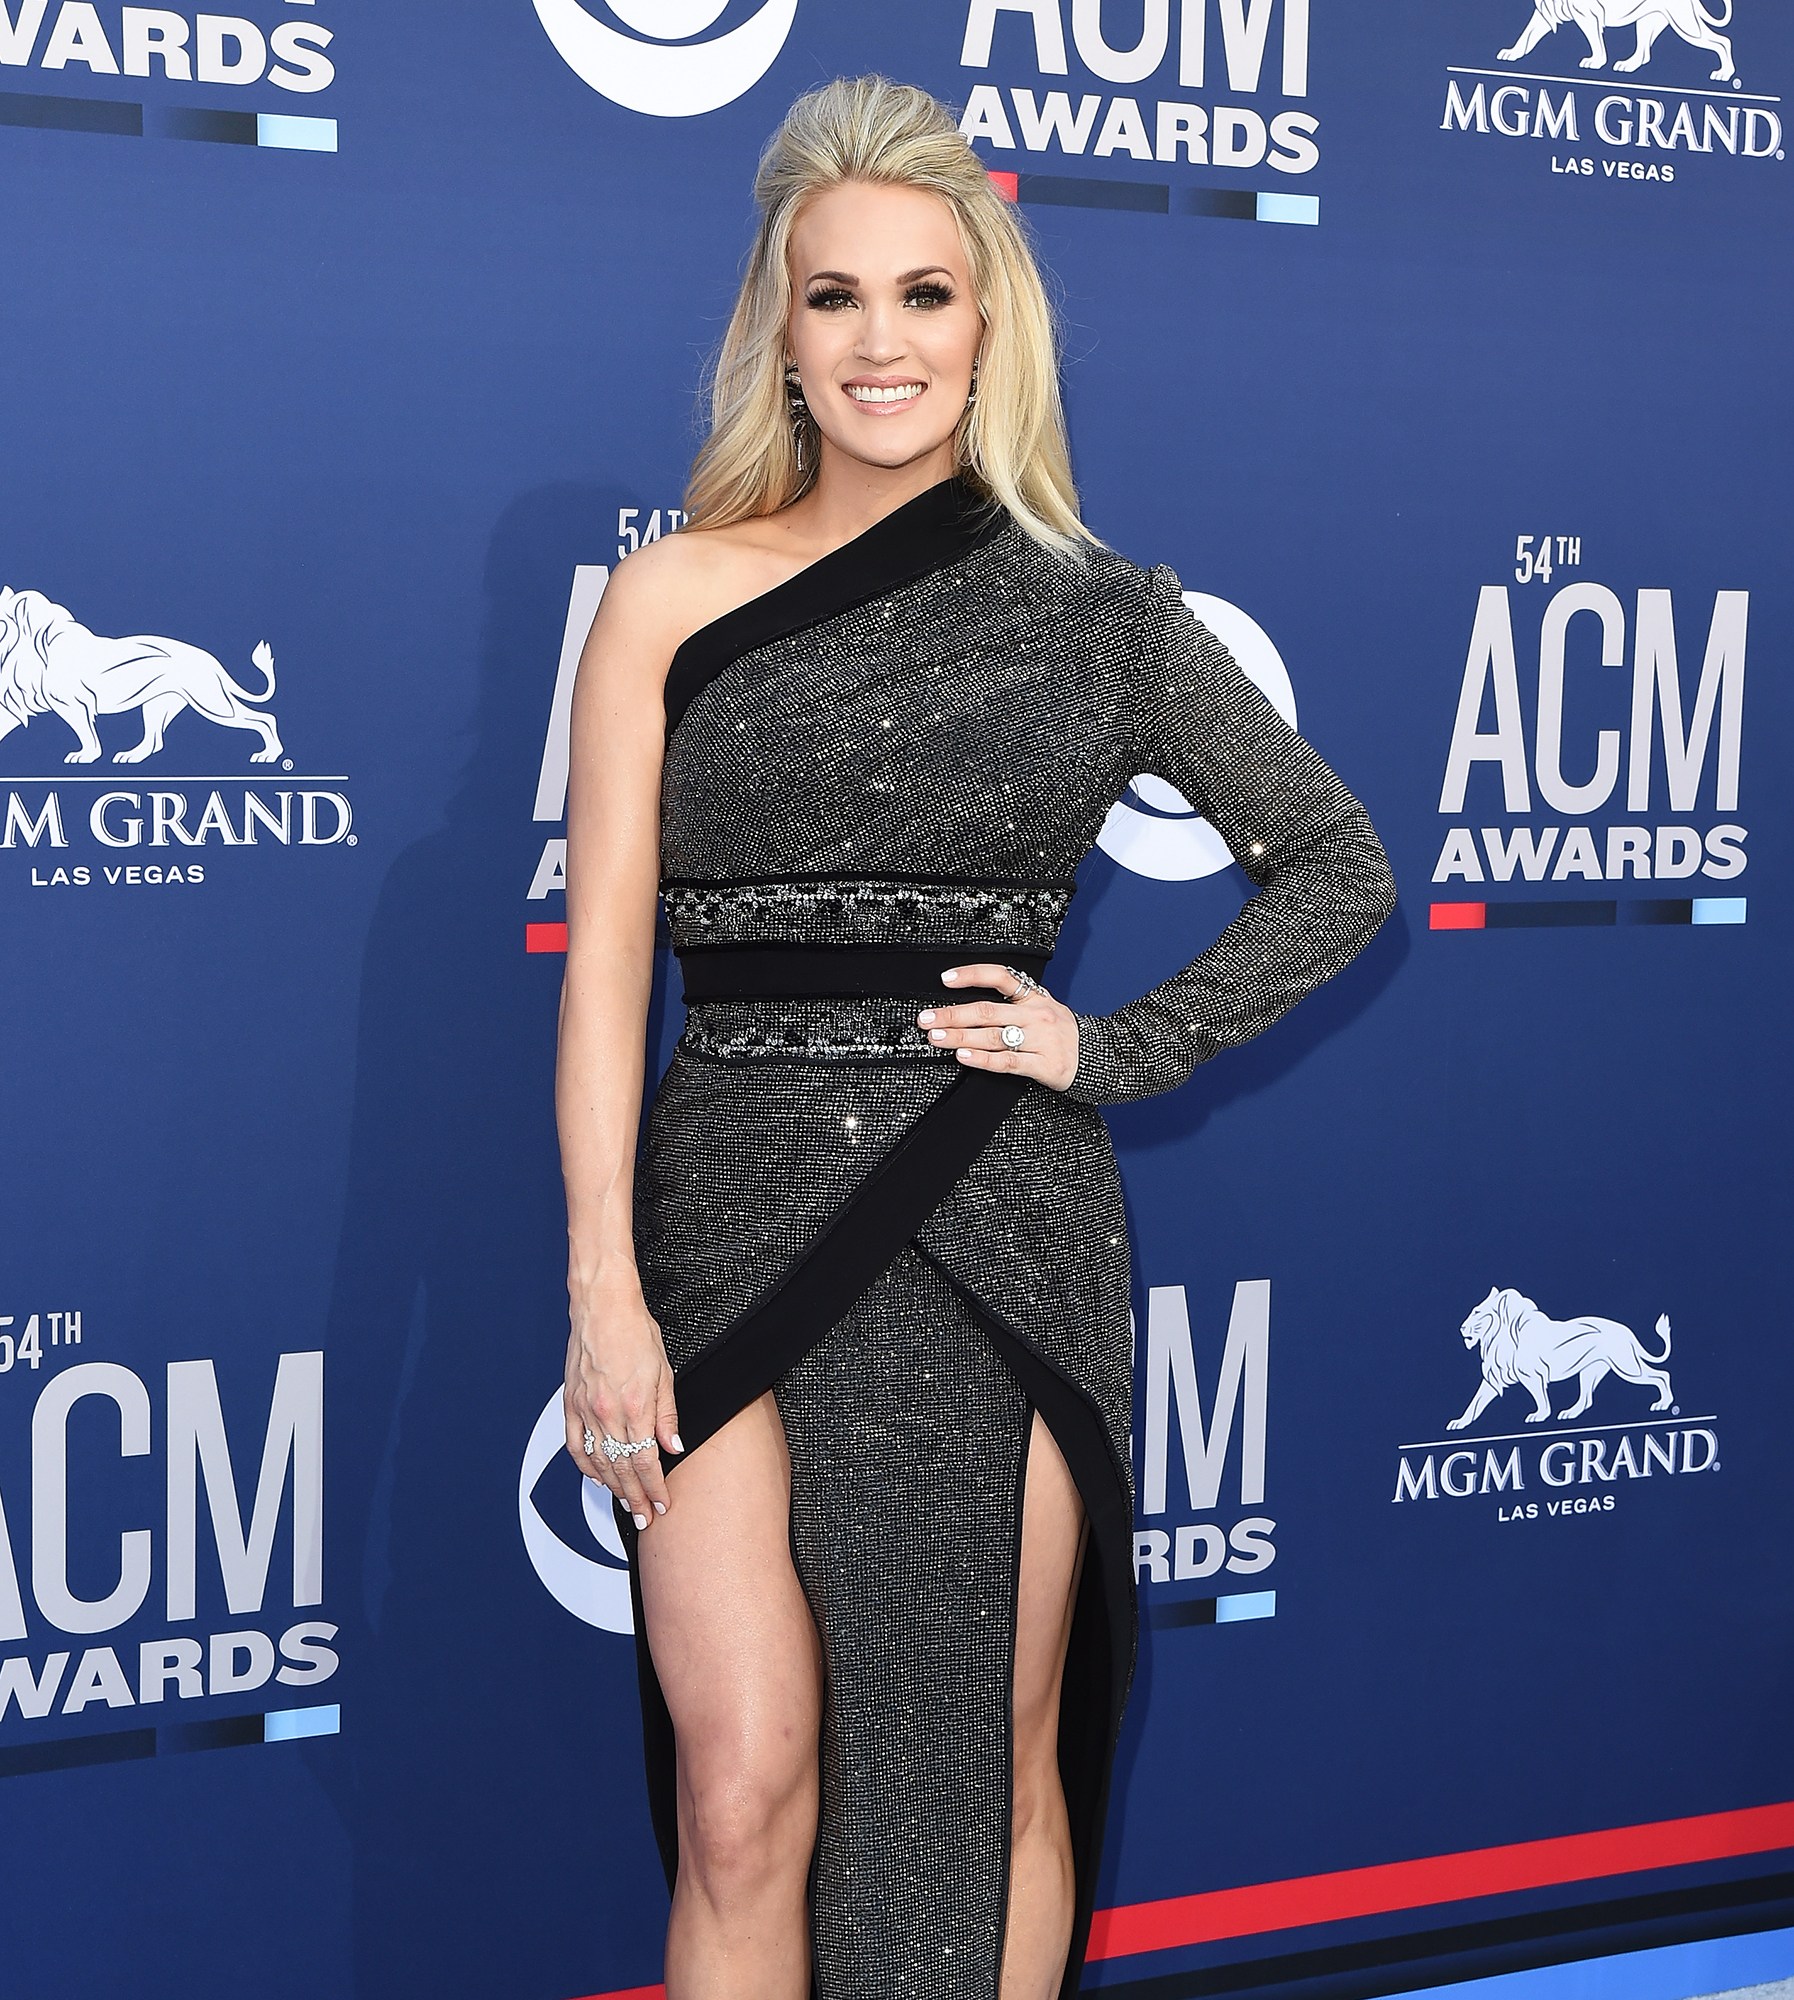 Carrie Underwood Son Isaiah Crush - Carrie Underwood attends the 54th Academy of Country Music Awards at MGM Grand Garden Arena on April 07, 2019 in Las Vegas, Nevada.